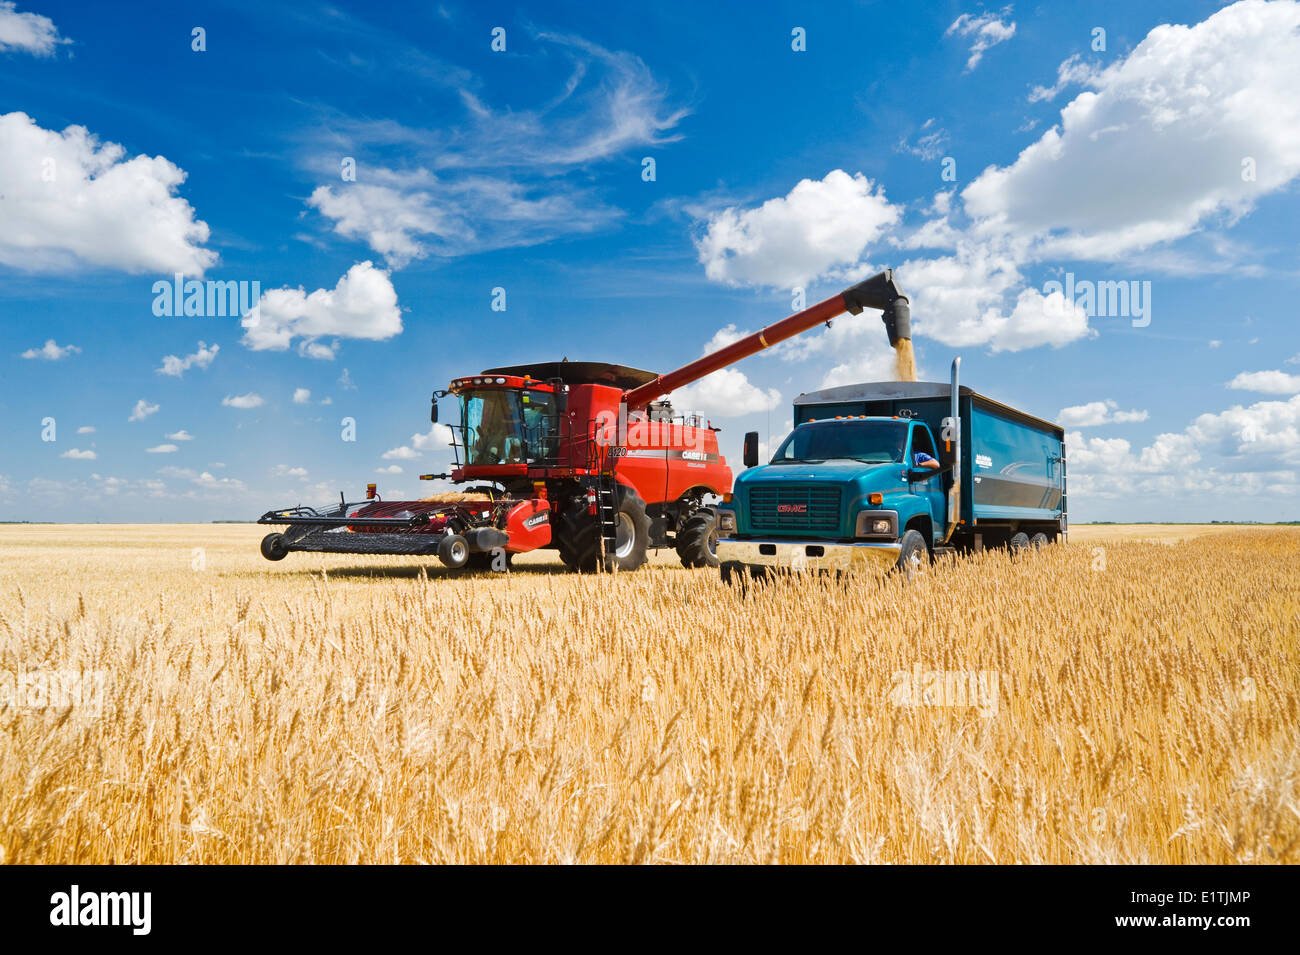 a combine augers barley into a farm truck parked next to a wheat field,  durung the harvest, near Dugald, Manitoba, Canada - Stock Image